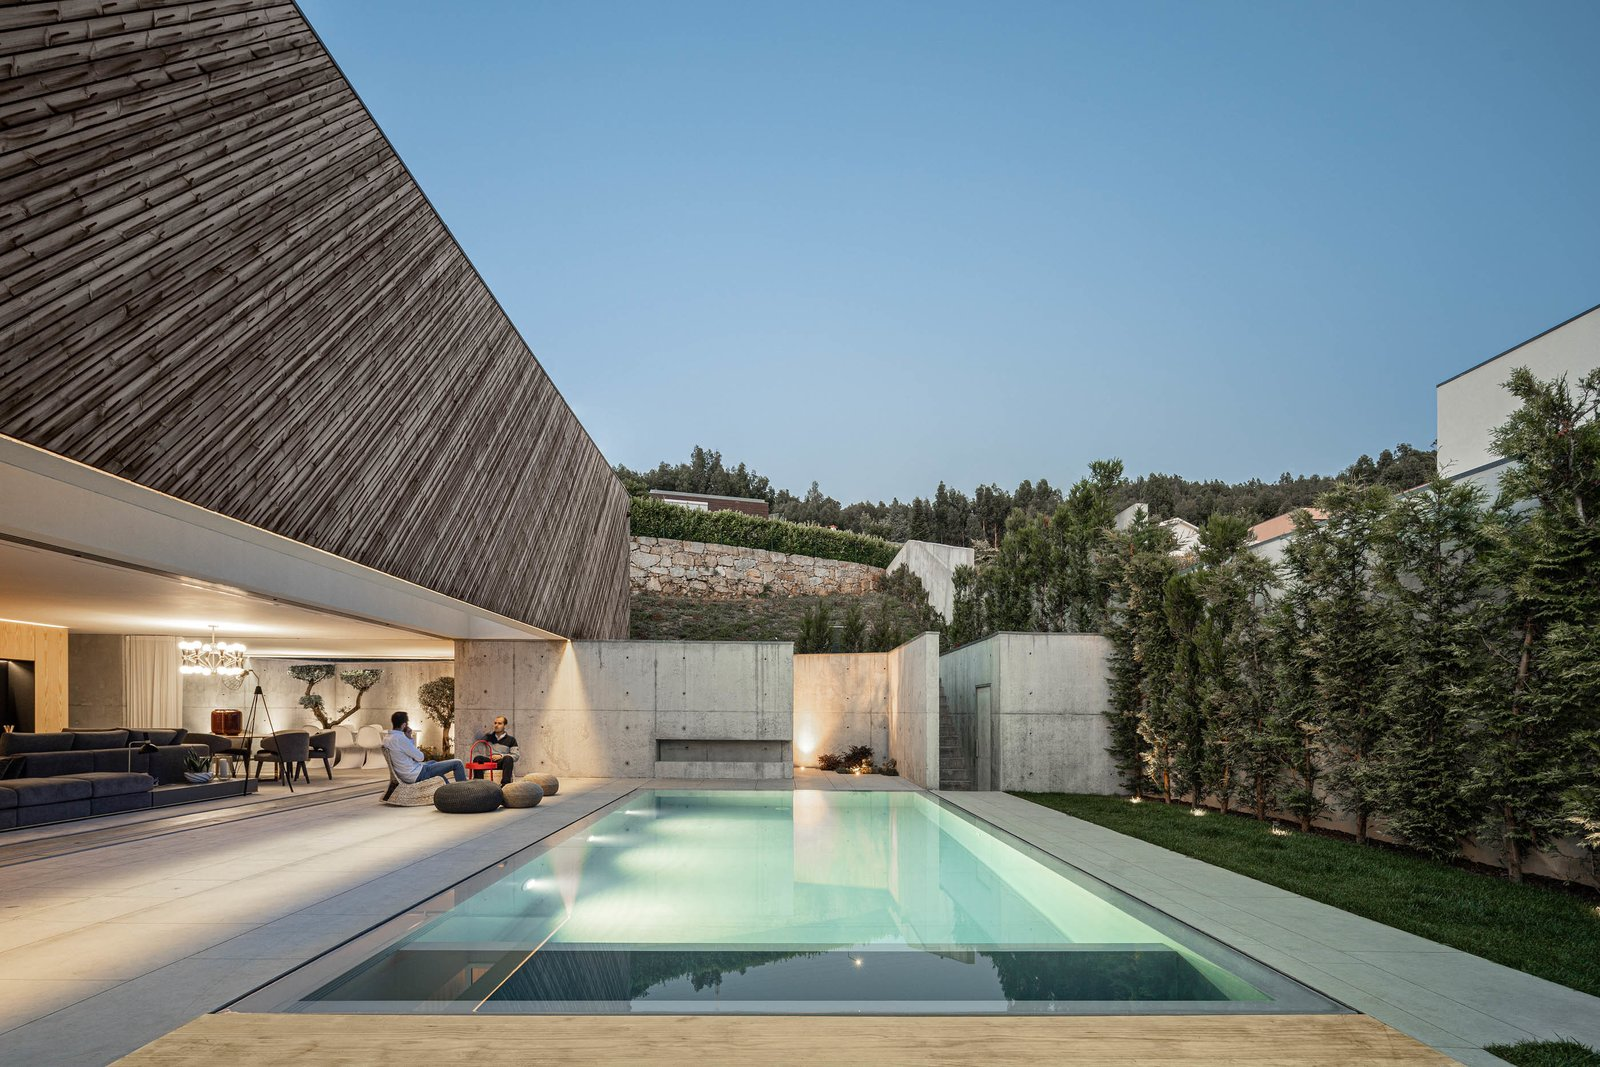 Outdoor Indoor/outdoor living is sweet at Casa A by REM'A Arquitectos: residents can easily step from the sleek concrete interiors to enjoy the pool and backyard area, which are framed by hillside views.  Best Outdoor Photos from Casa A